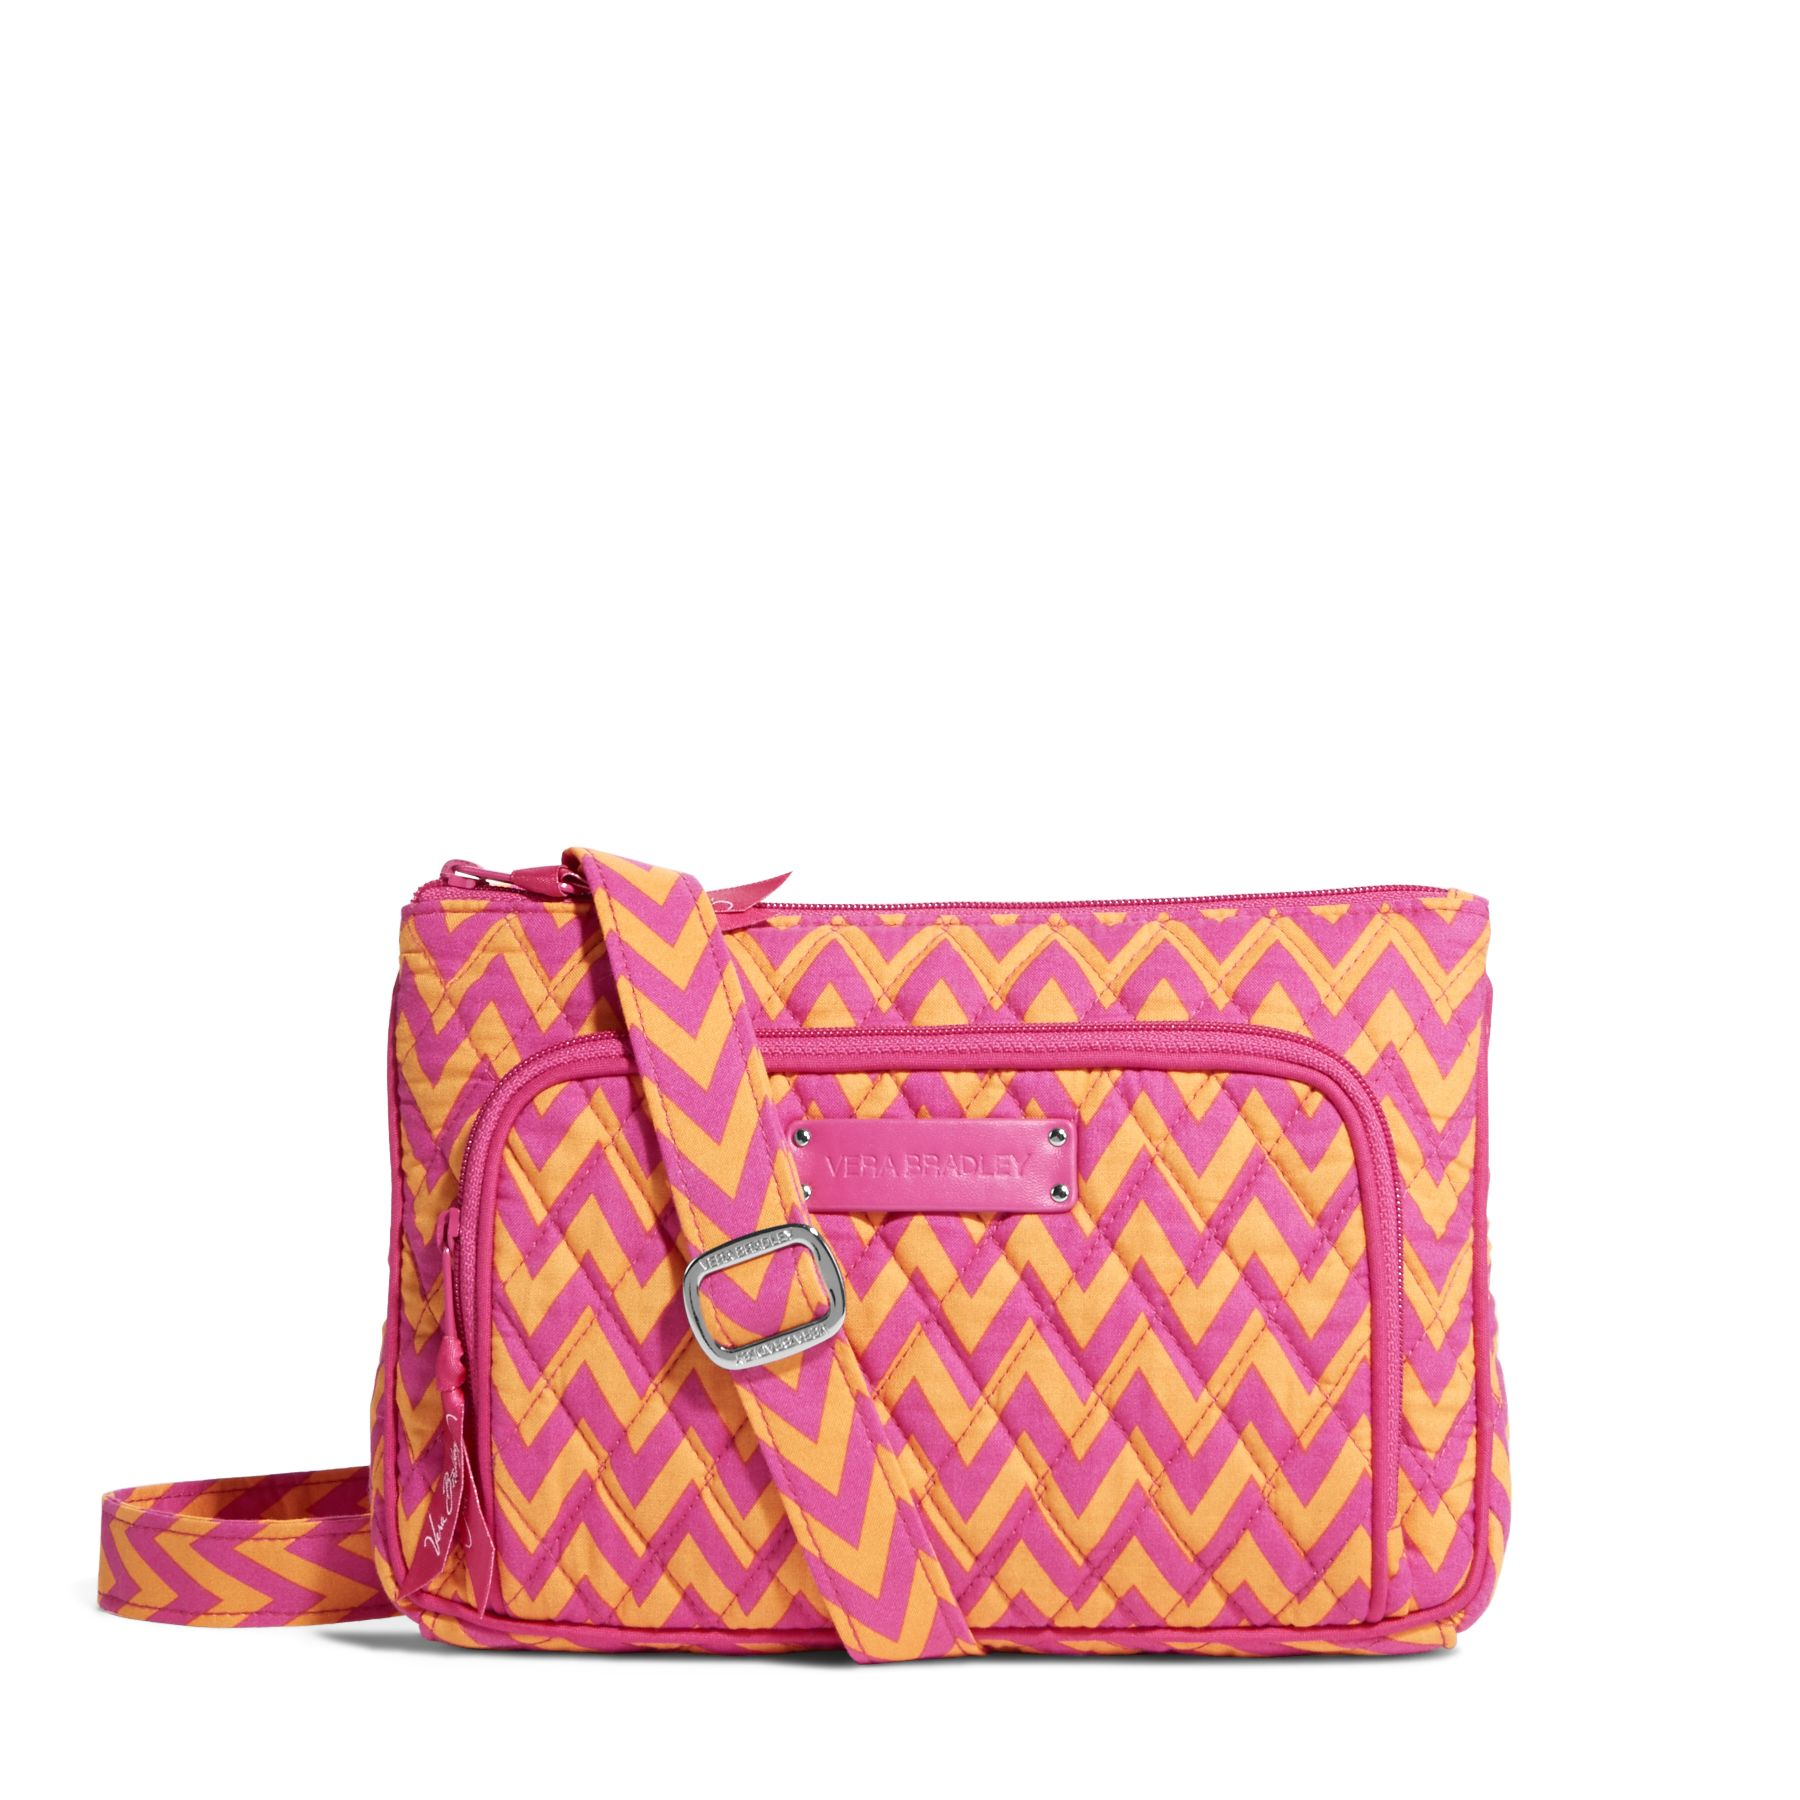 Vera Bradley Little Hipster Crossbody in Ziggy Zags